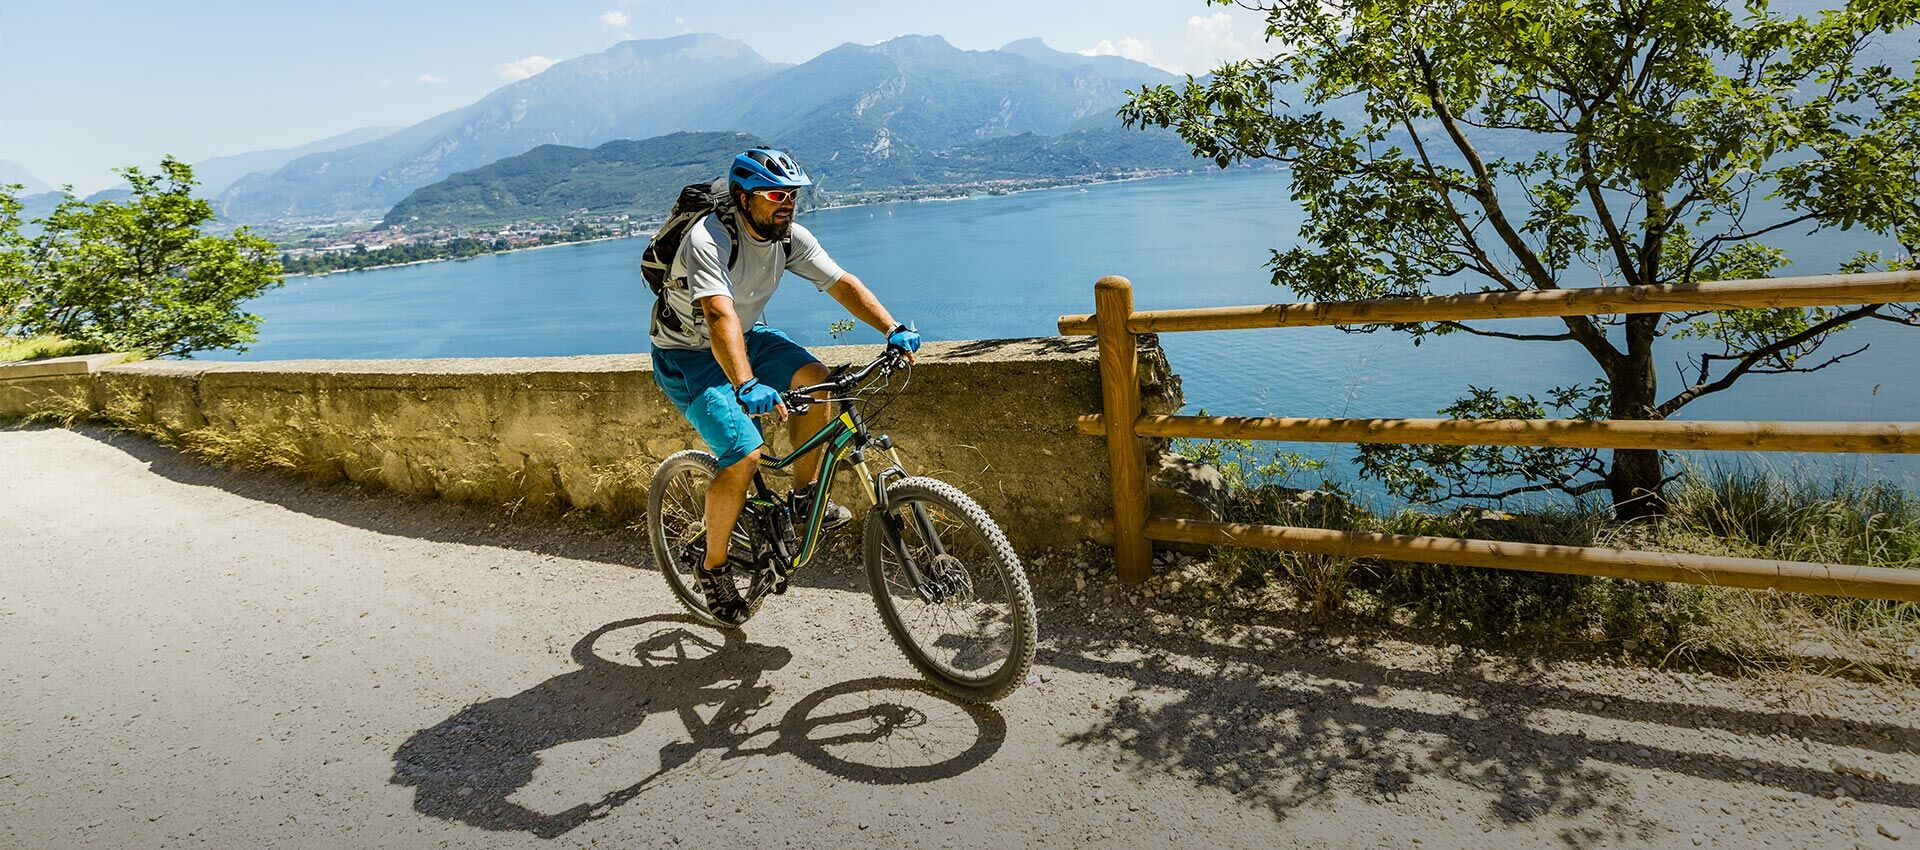 of sport on Lake Garda